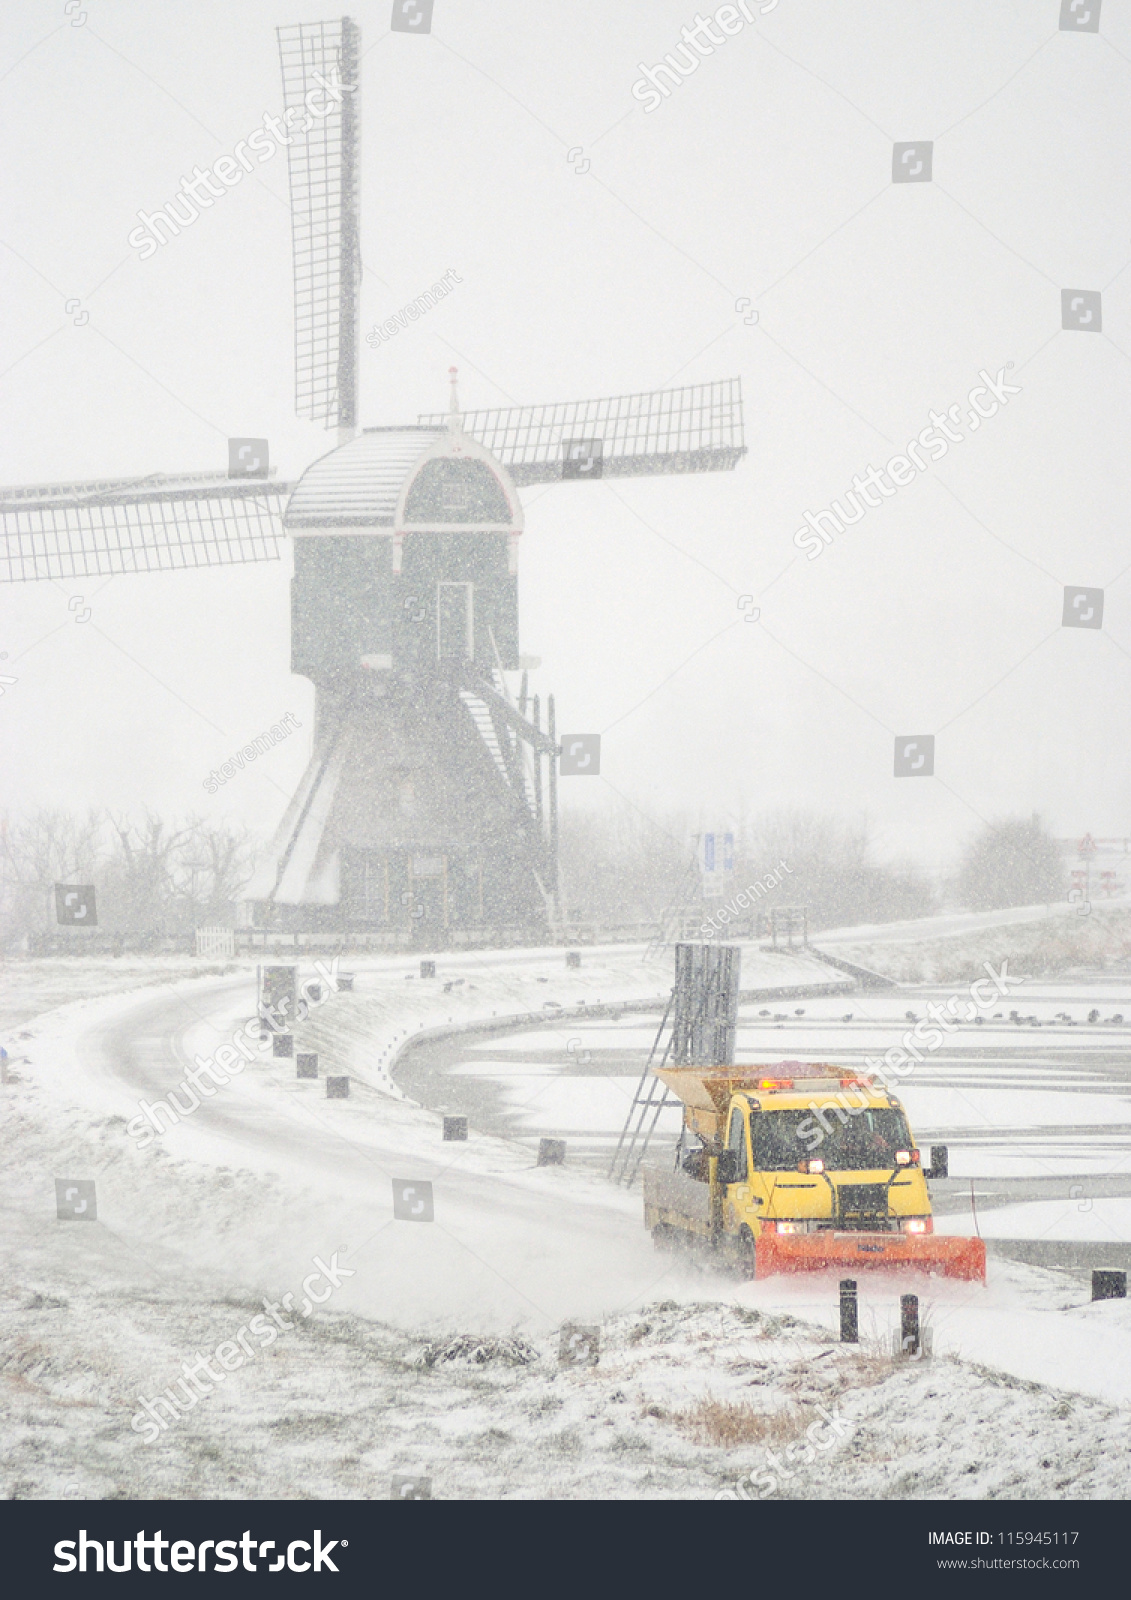 stock-photo-snowplough-clearing-snow-dur